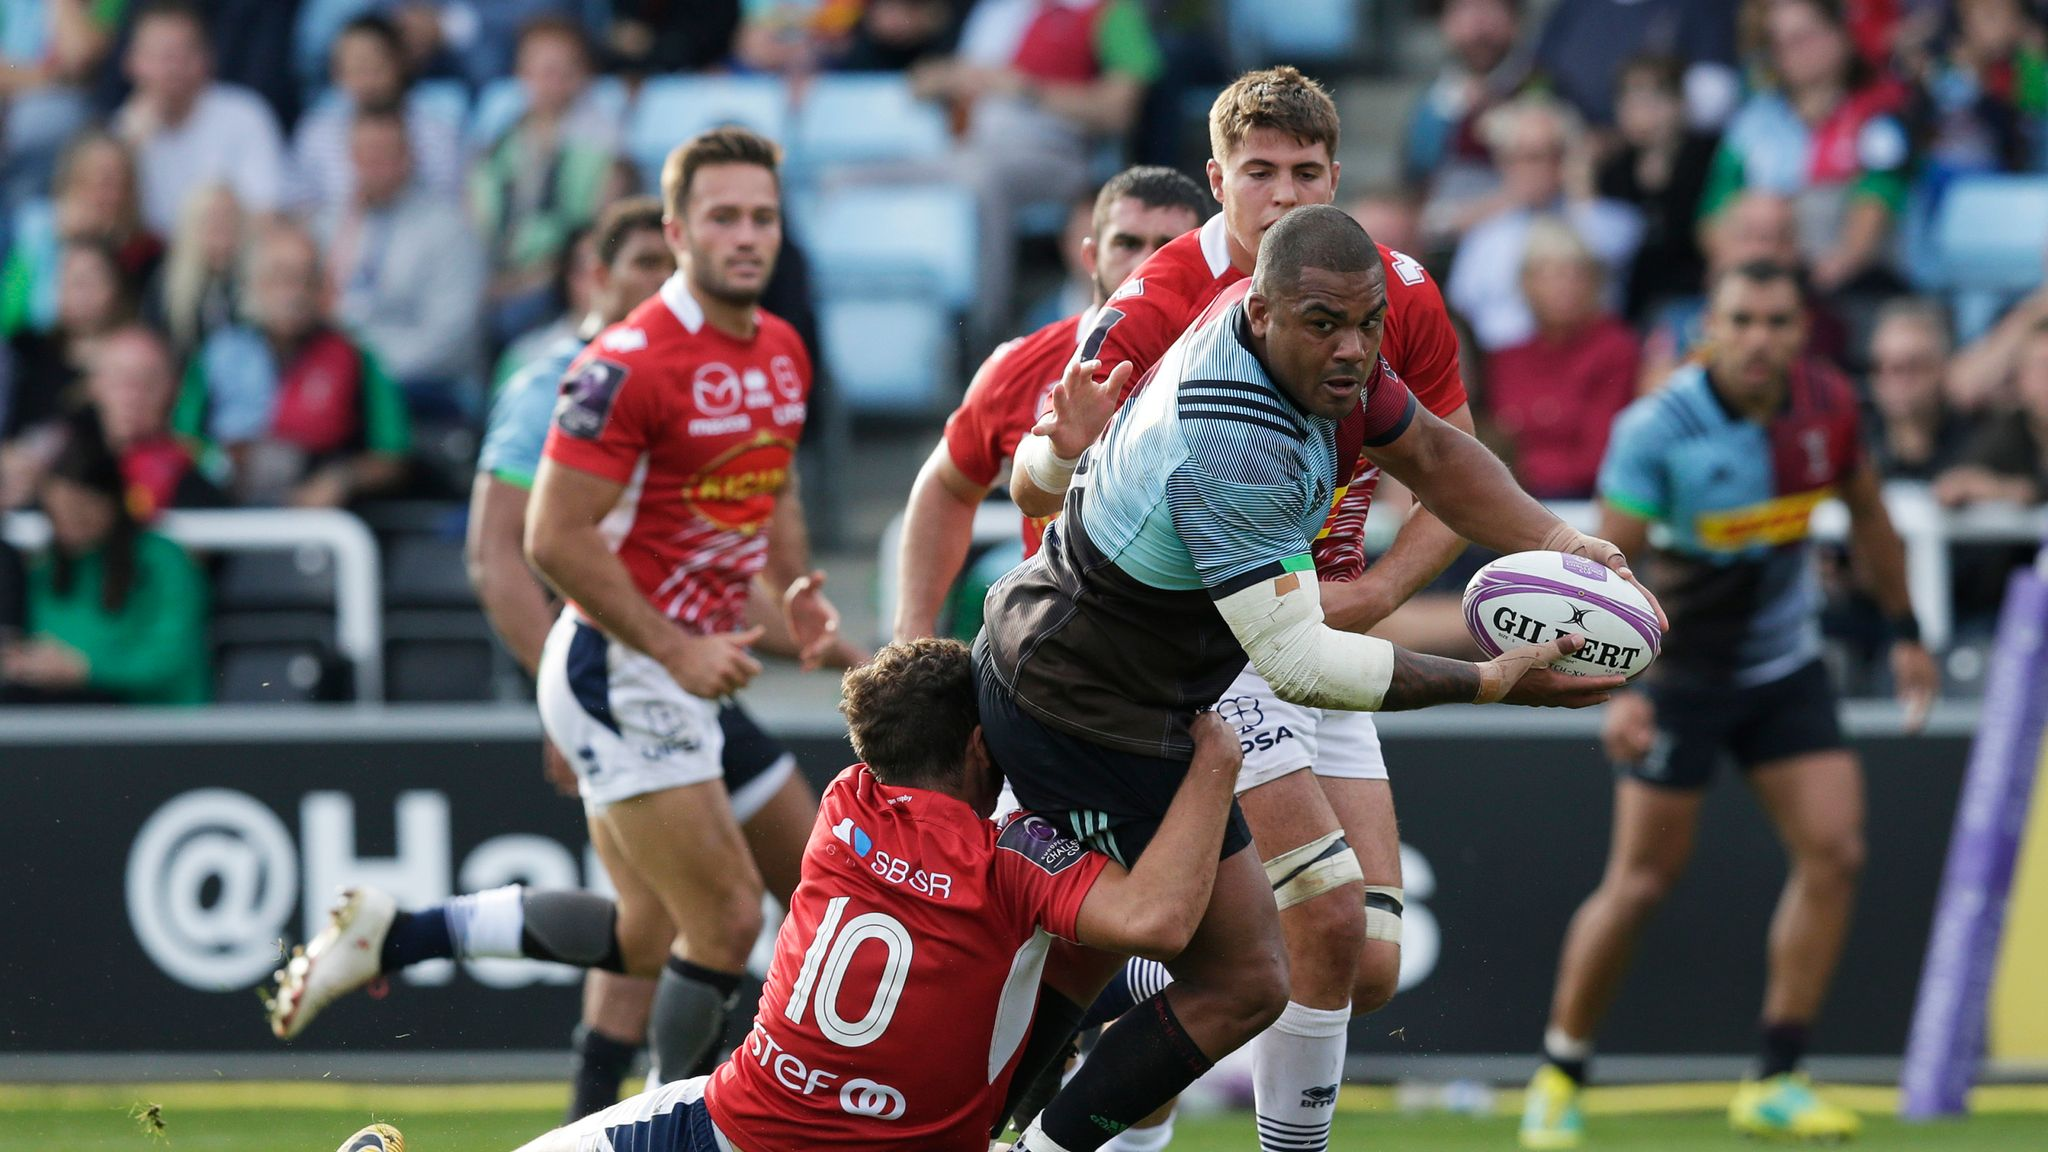 Champions Cup preview: Pool 3 - Clermont Auvergne, Ulster, Bath, Harlequins